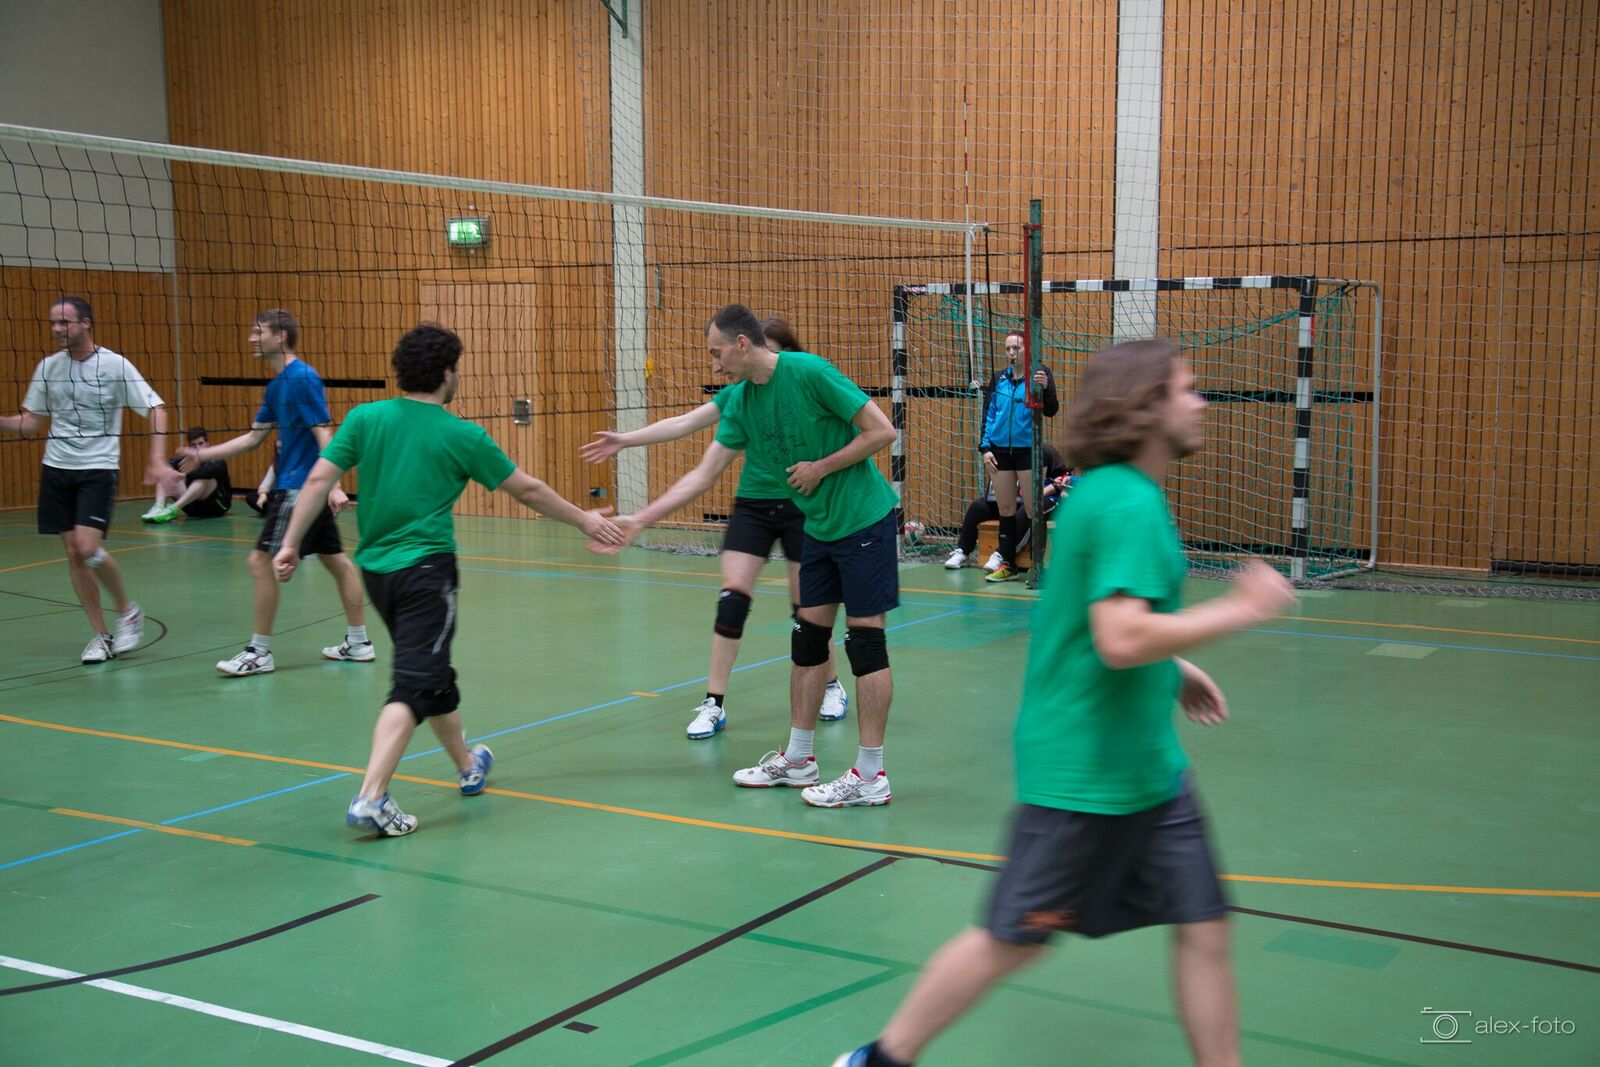 VolleyballturnierV1